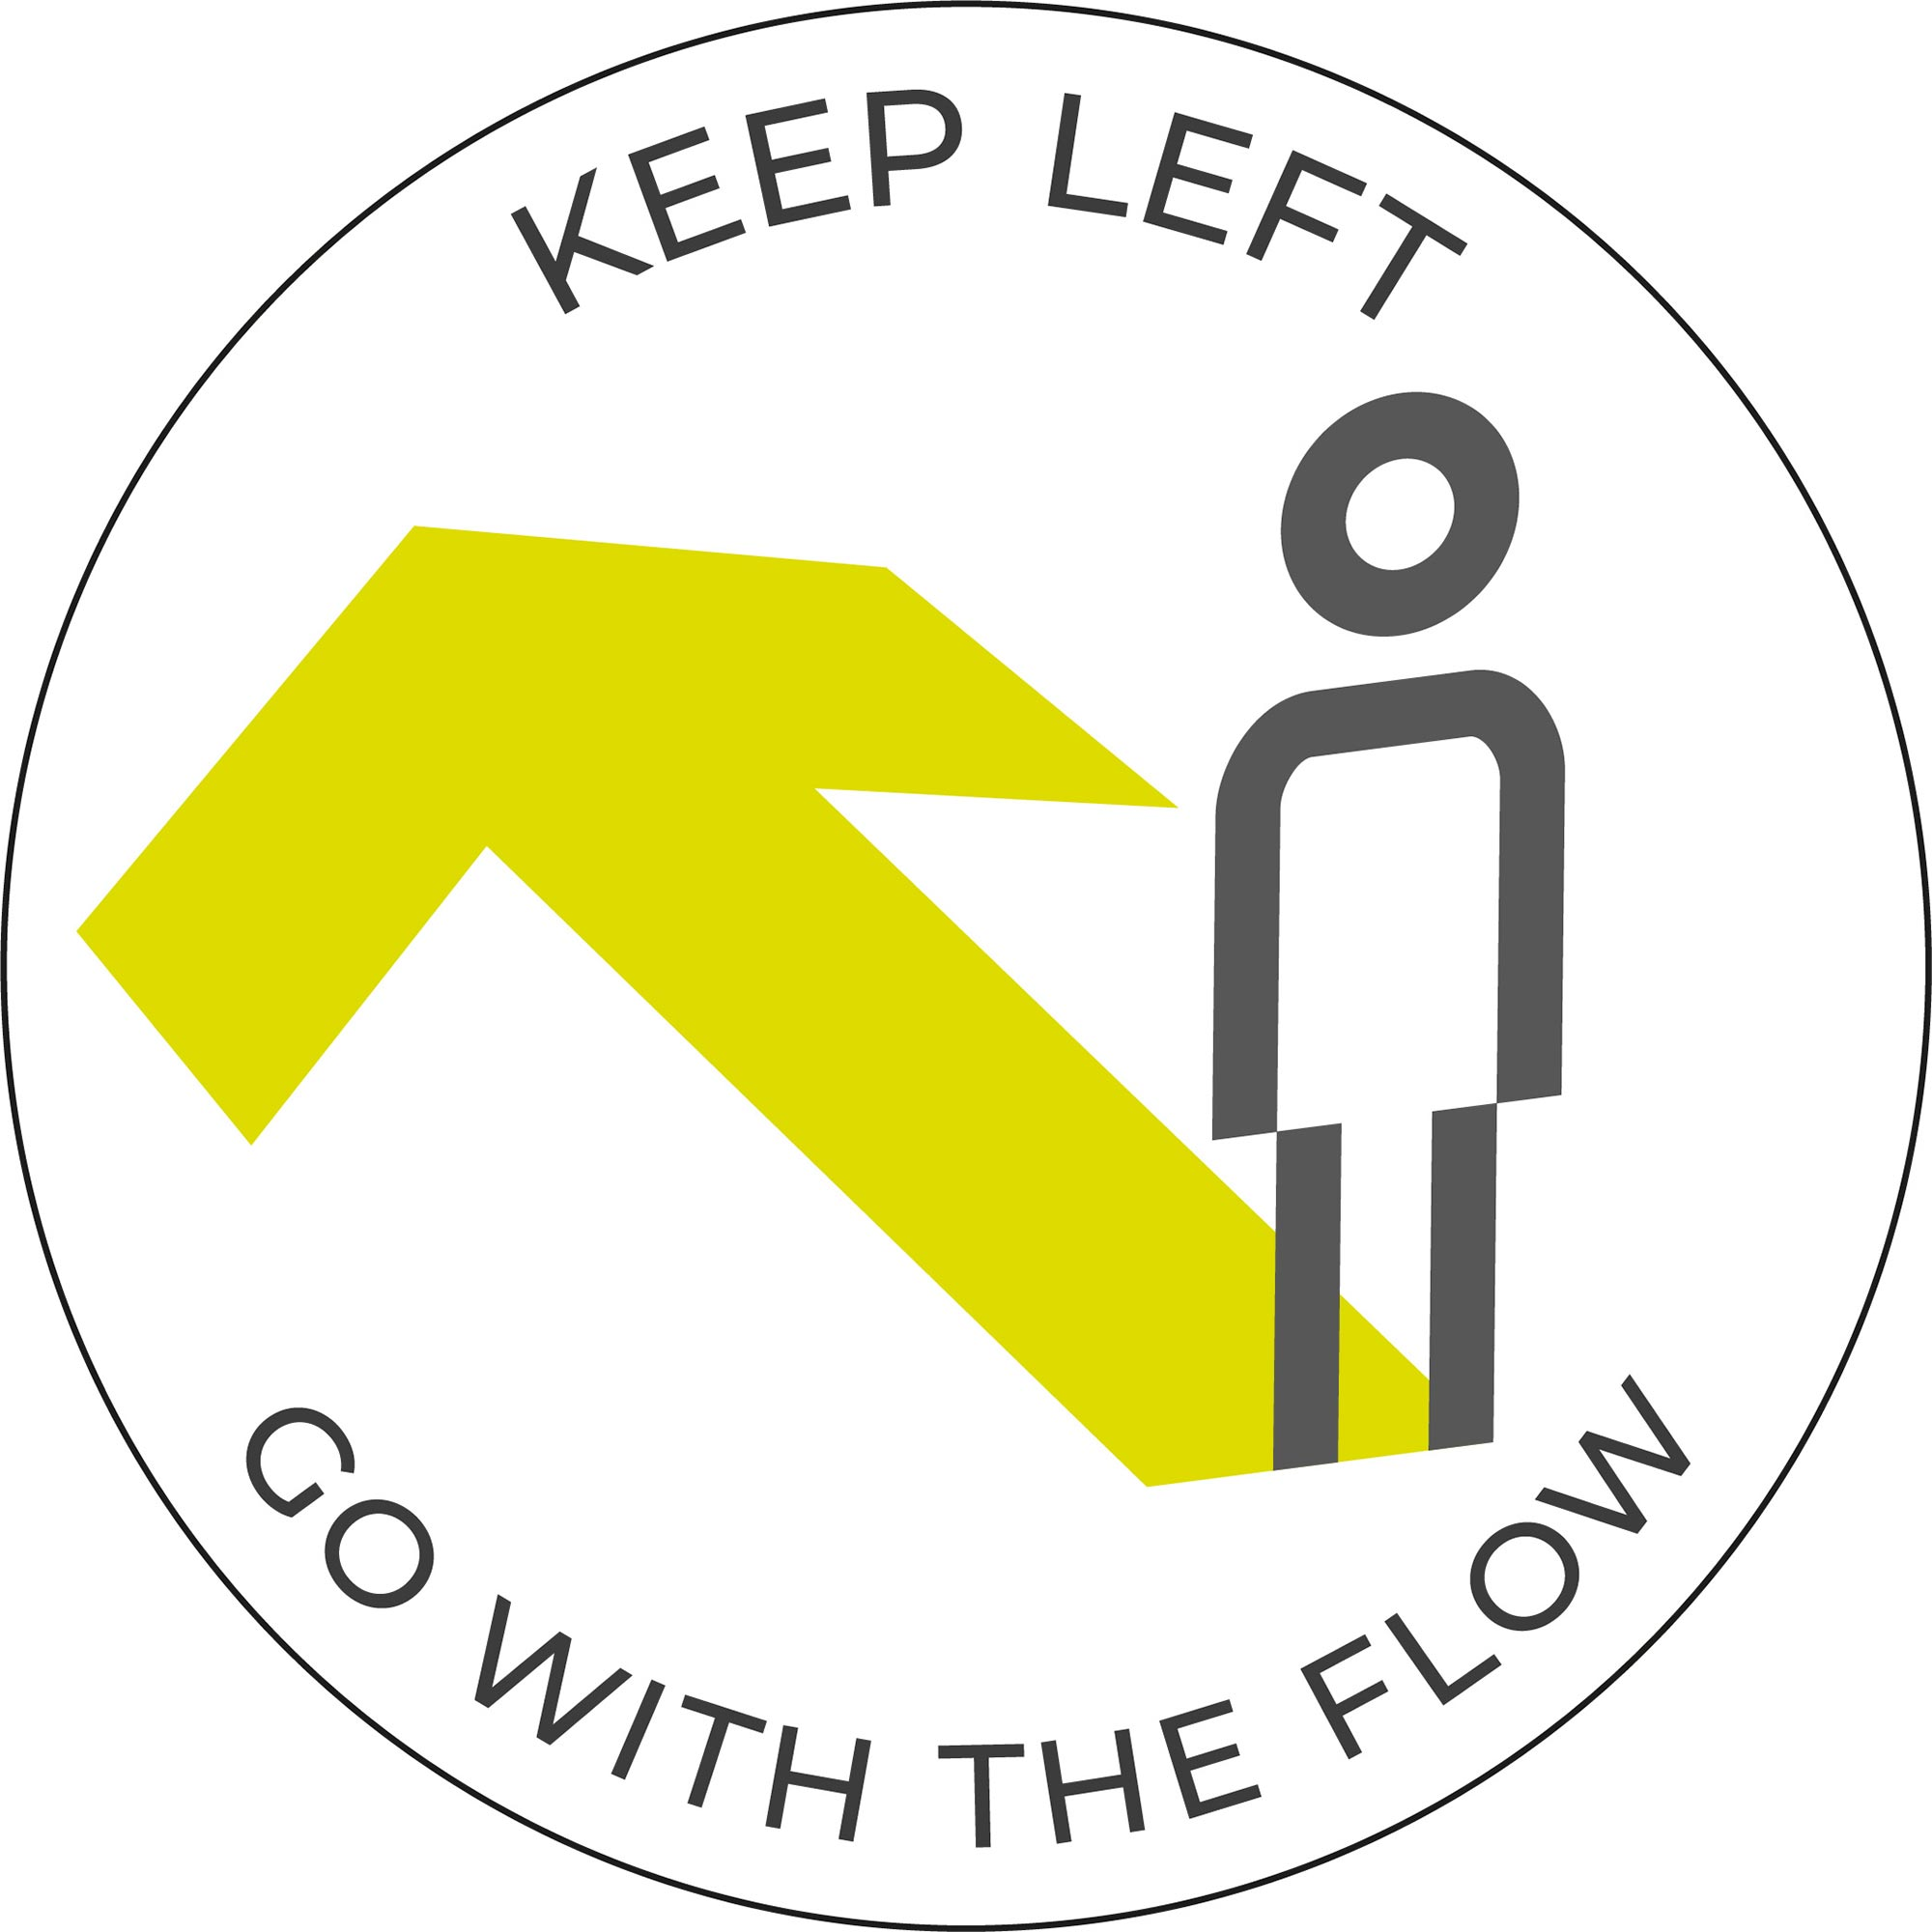 Go with the flow - White sticker